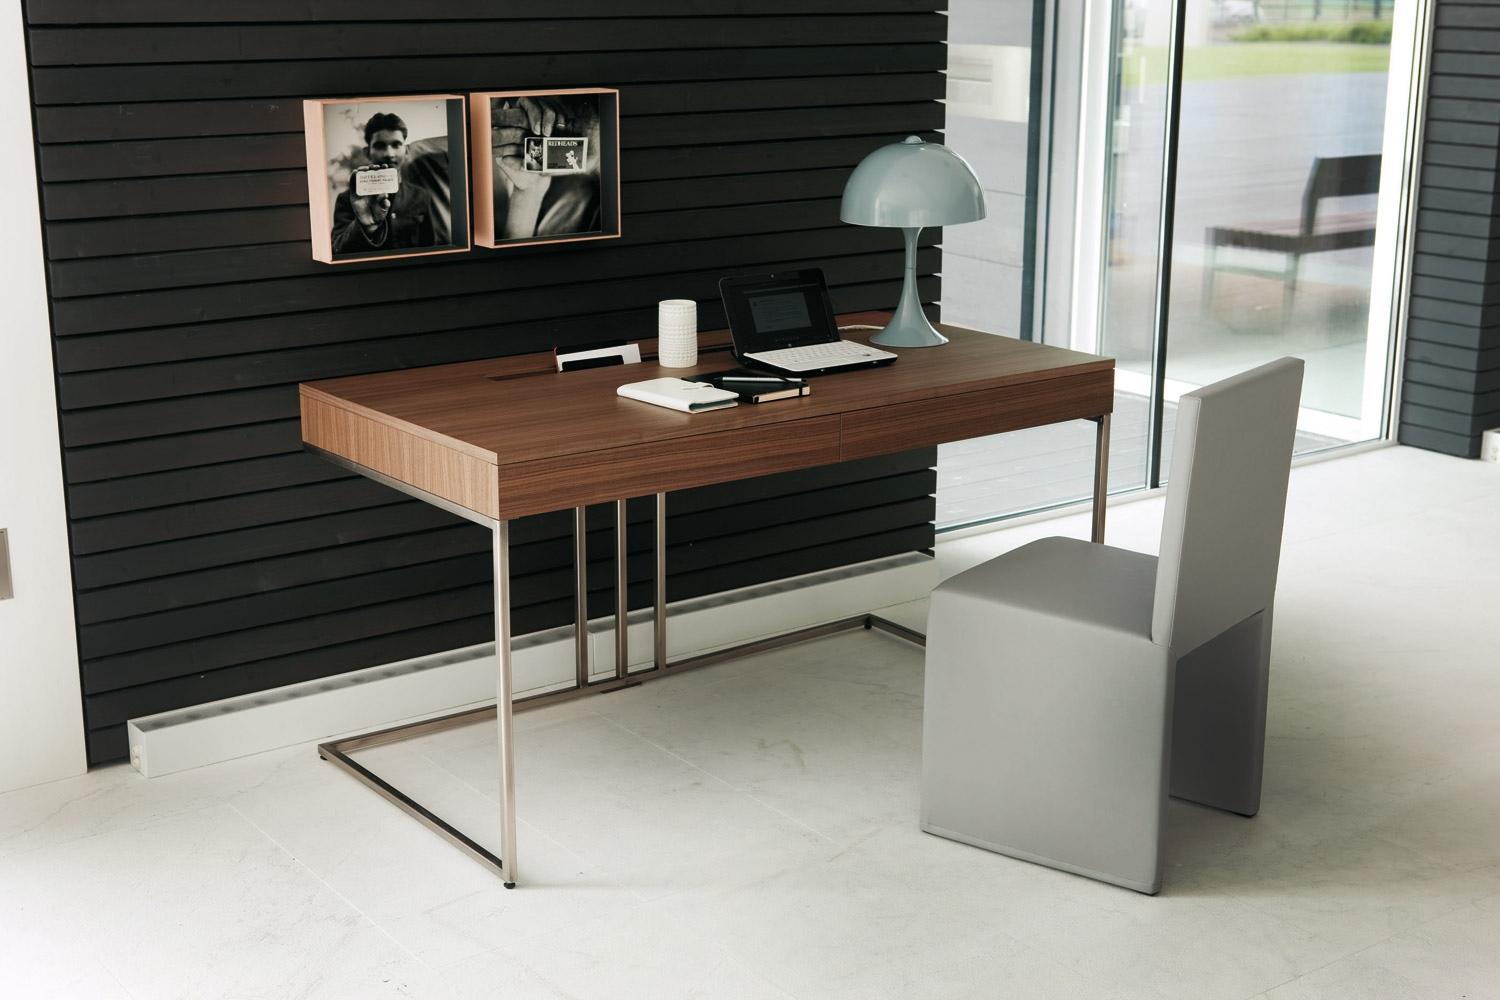 office desks designs. Office Desks Designs O